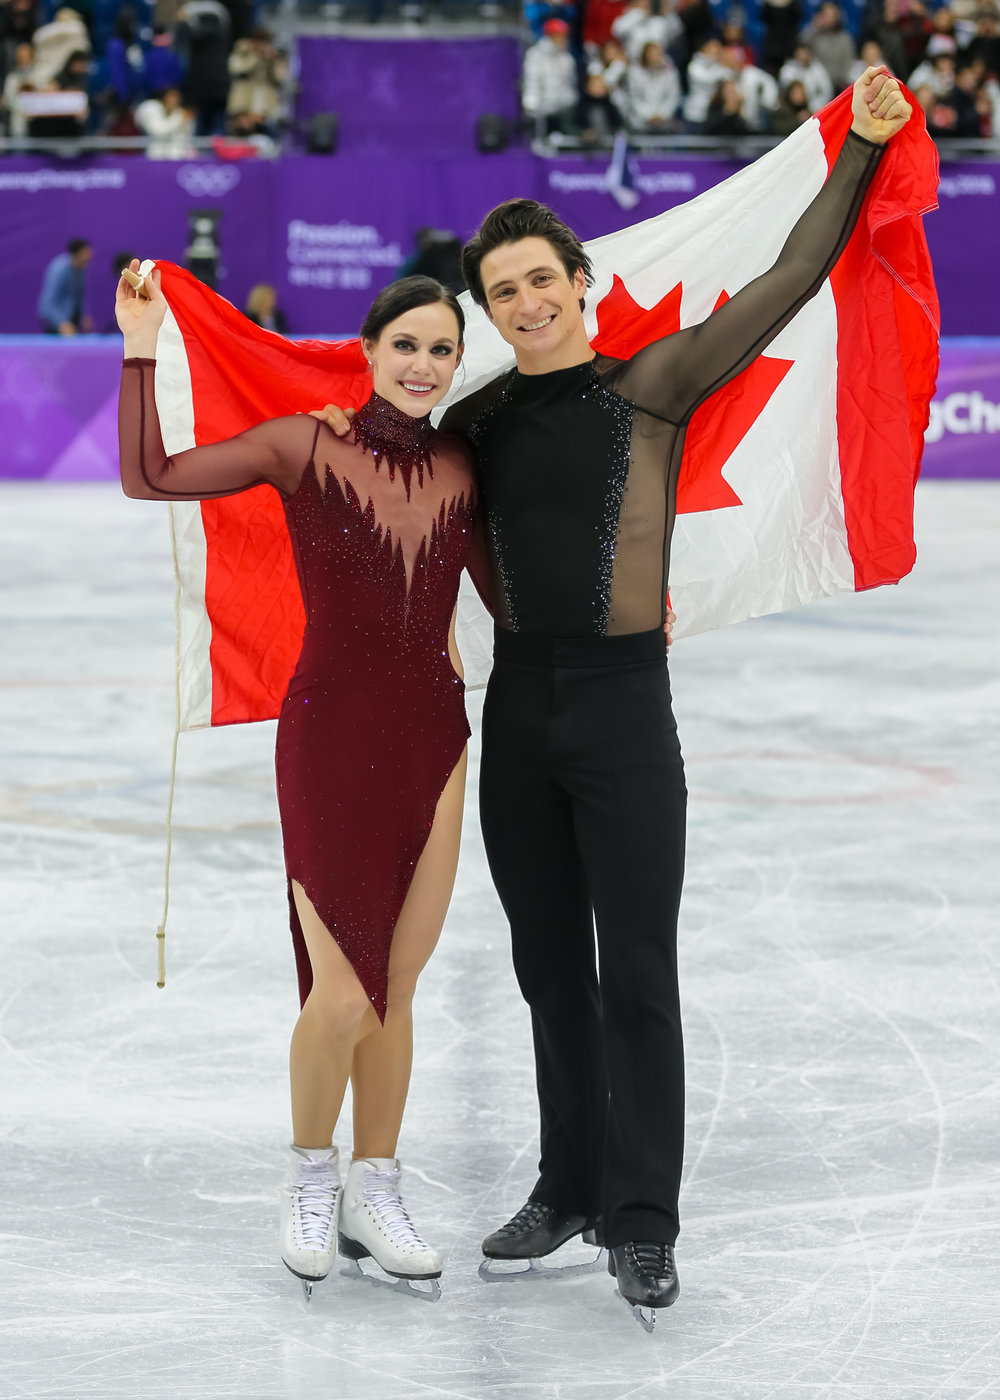 Virtue and Moir at the 2018 Winter Olympics